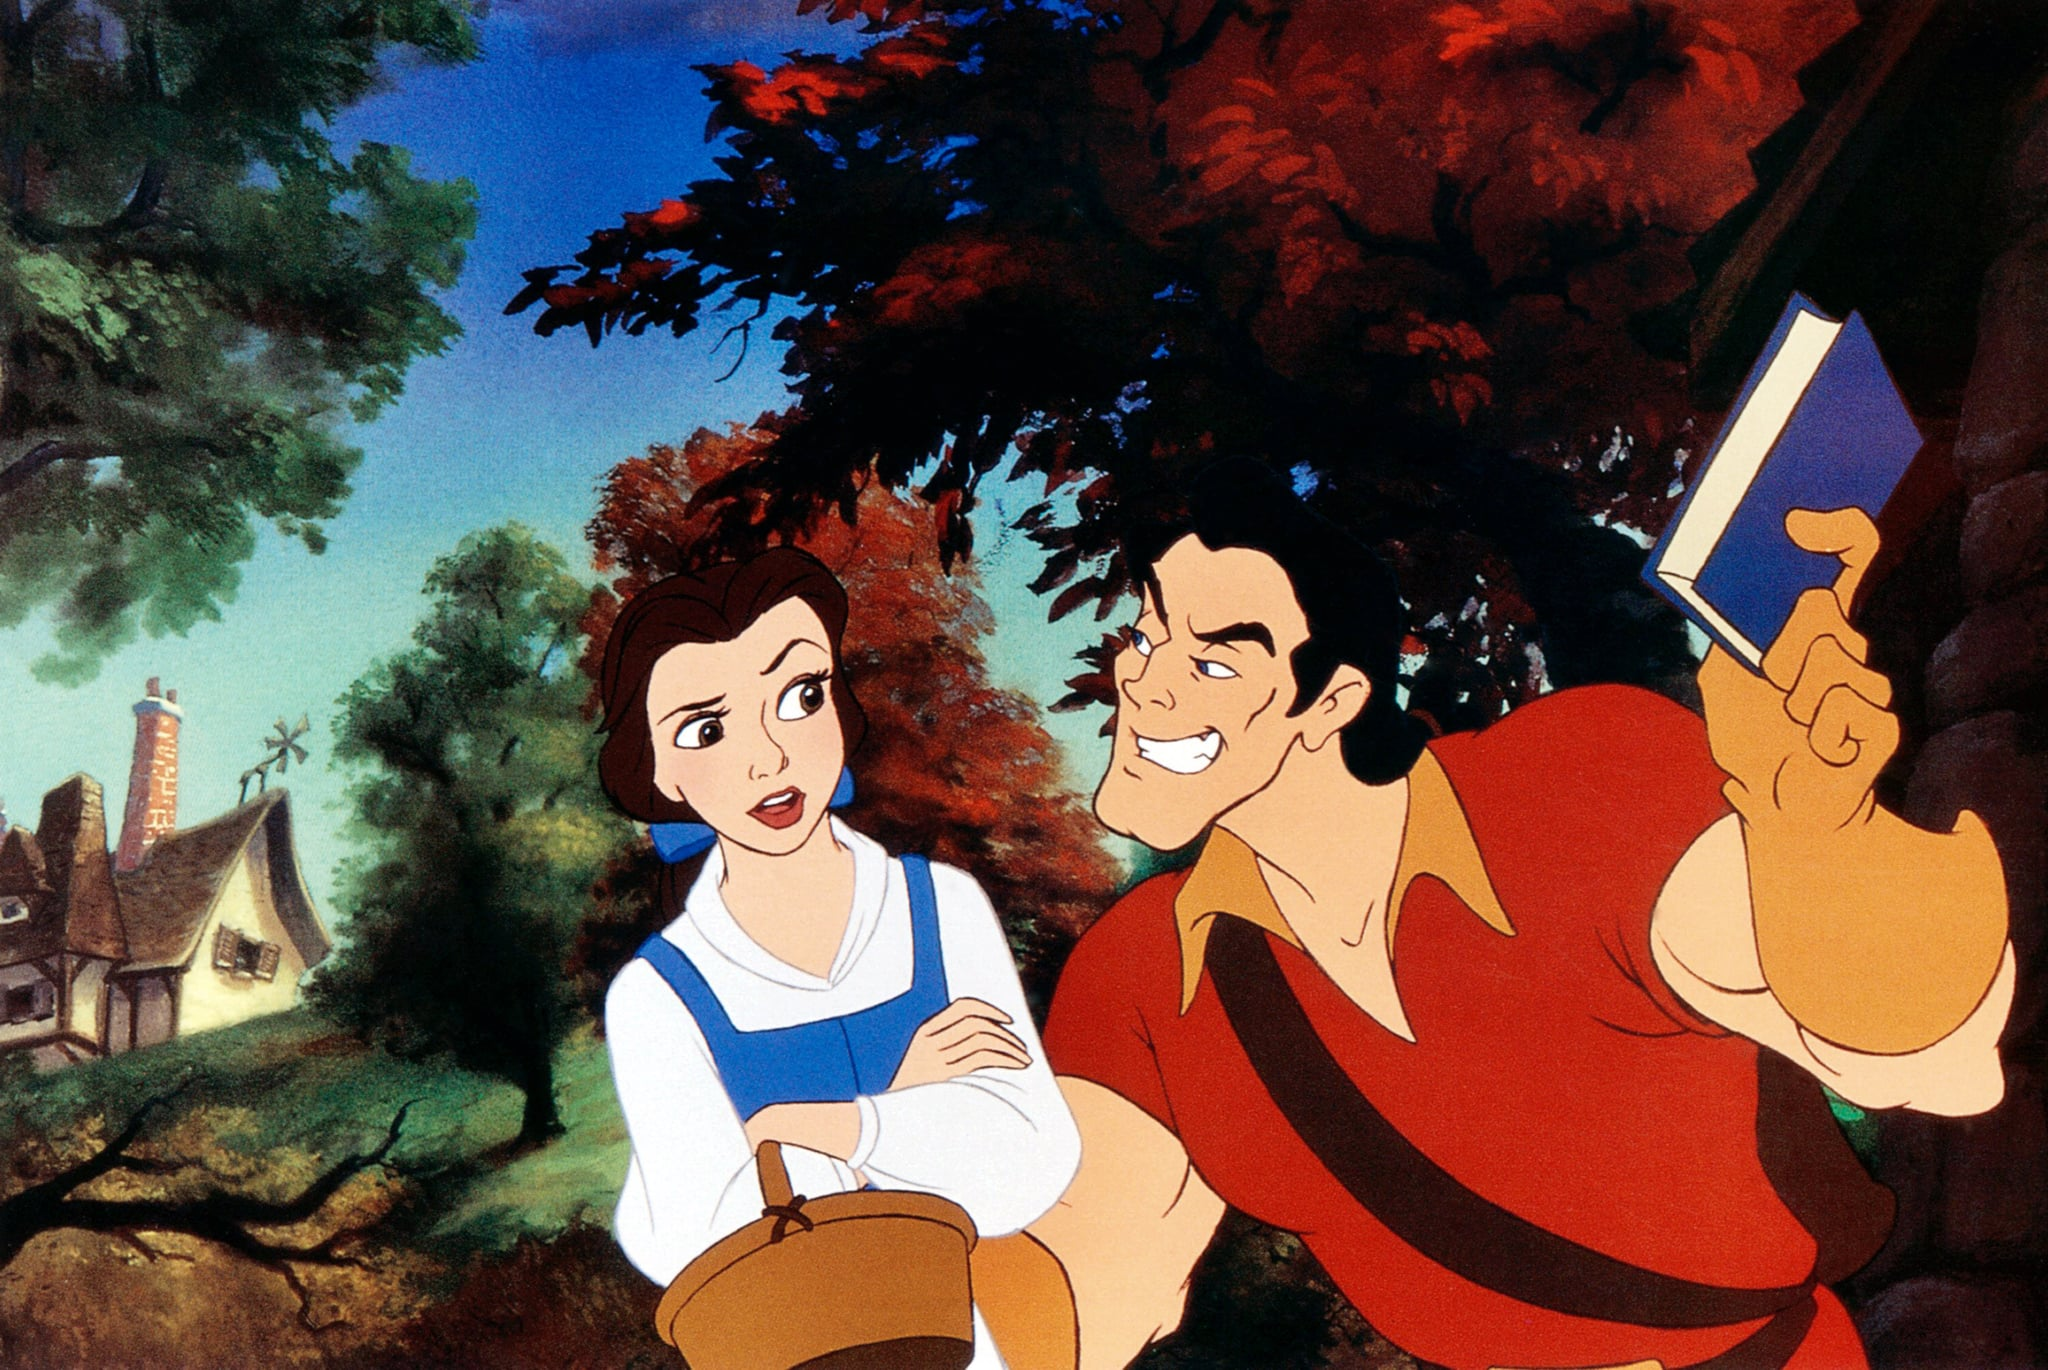 BEAUTY AND THE BEAST, from left: Belle, Gaston, 1991. Buena Vista Pictures/courtesy Everett Collection